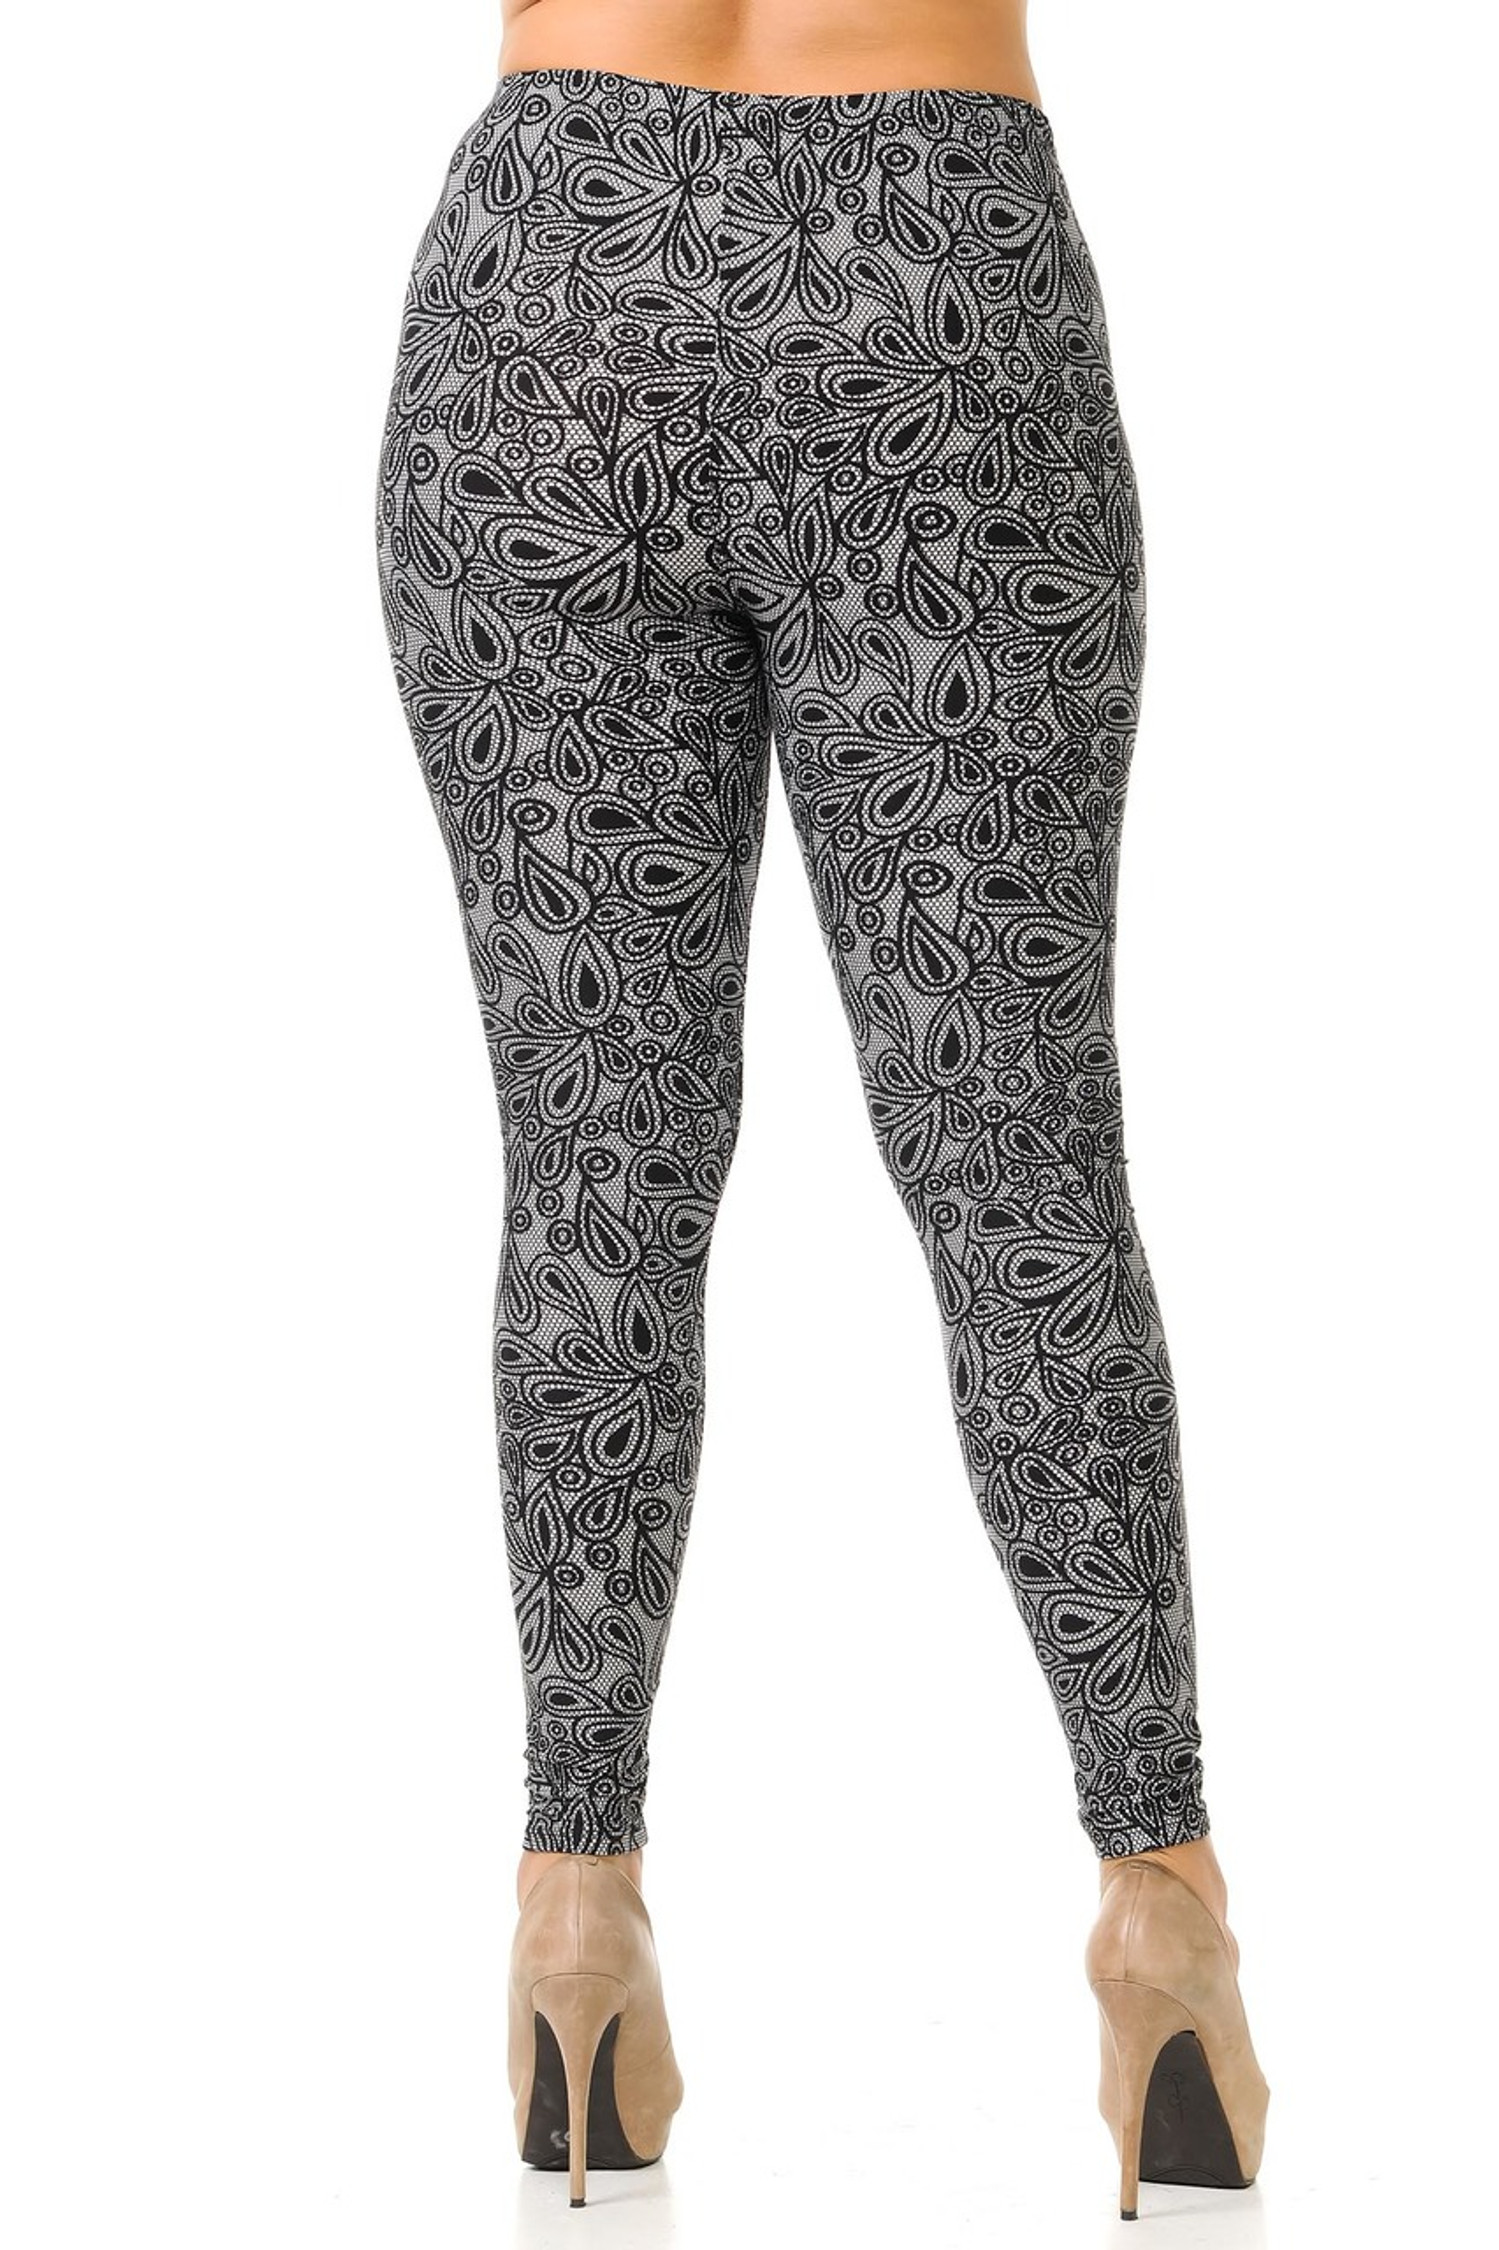 Brushed Floral Netted Petal Plus Size Leggings